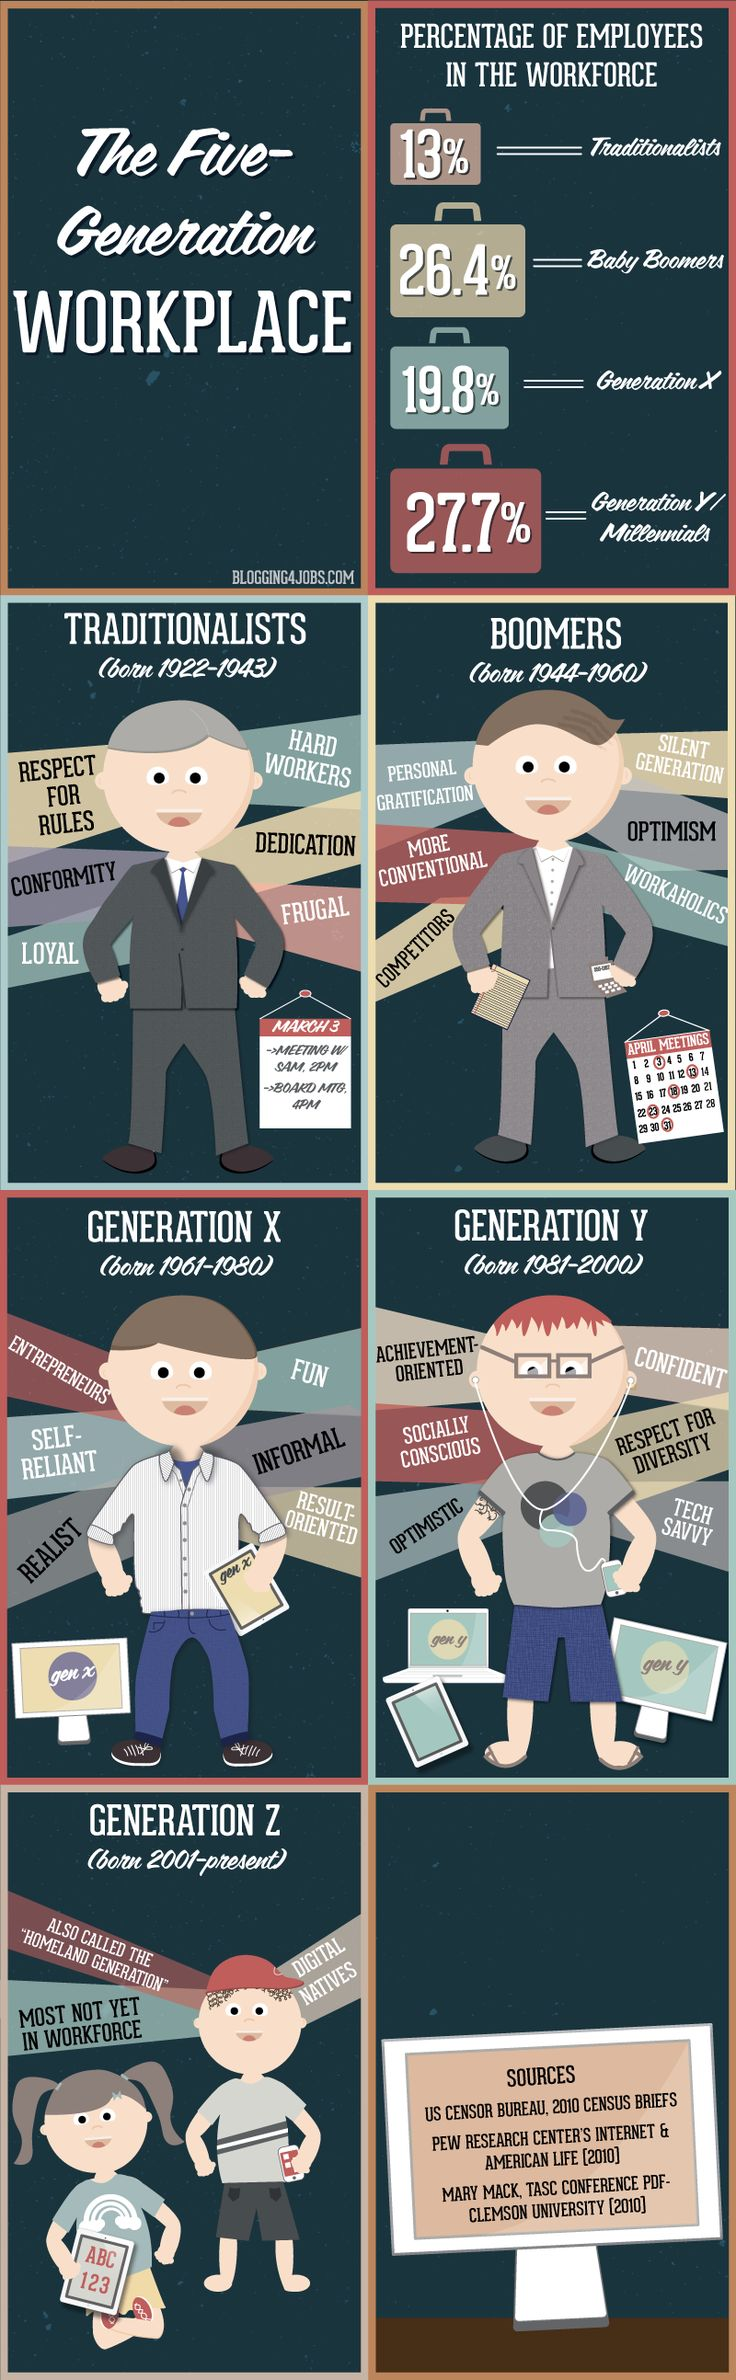 The Five-Generation Workplace